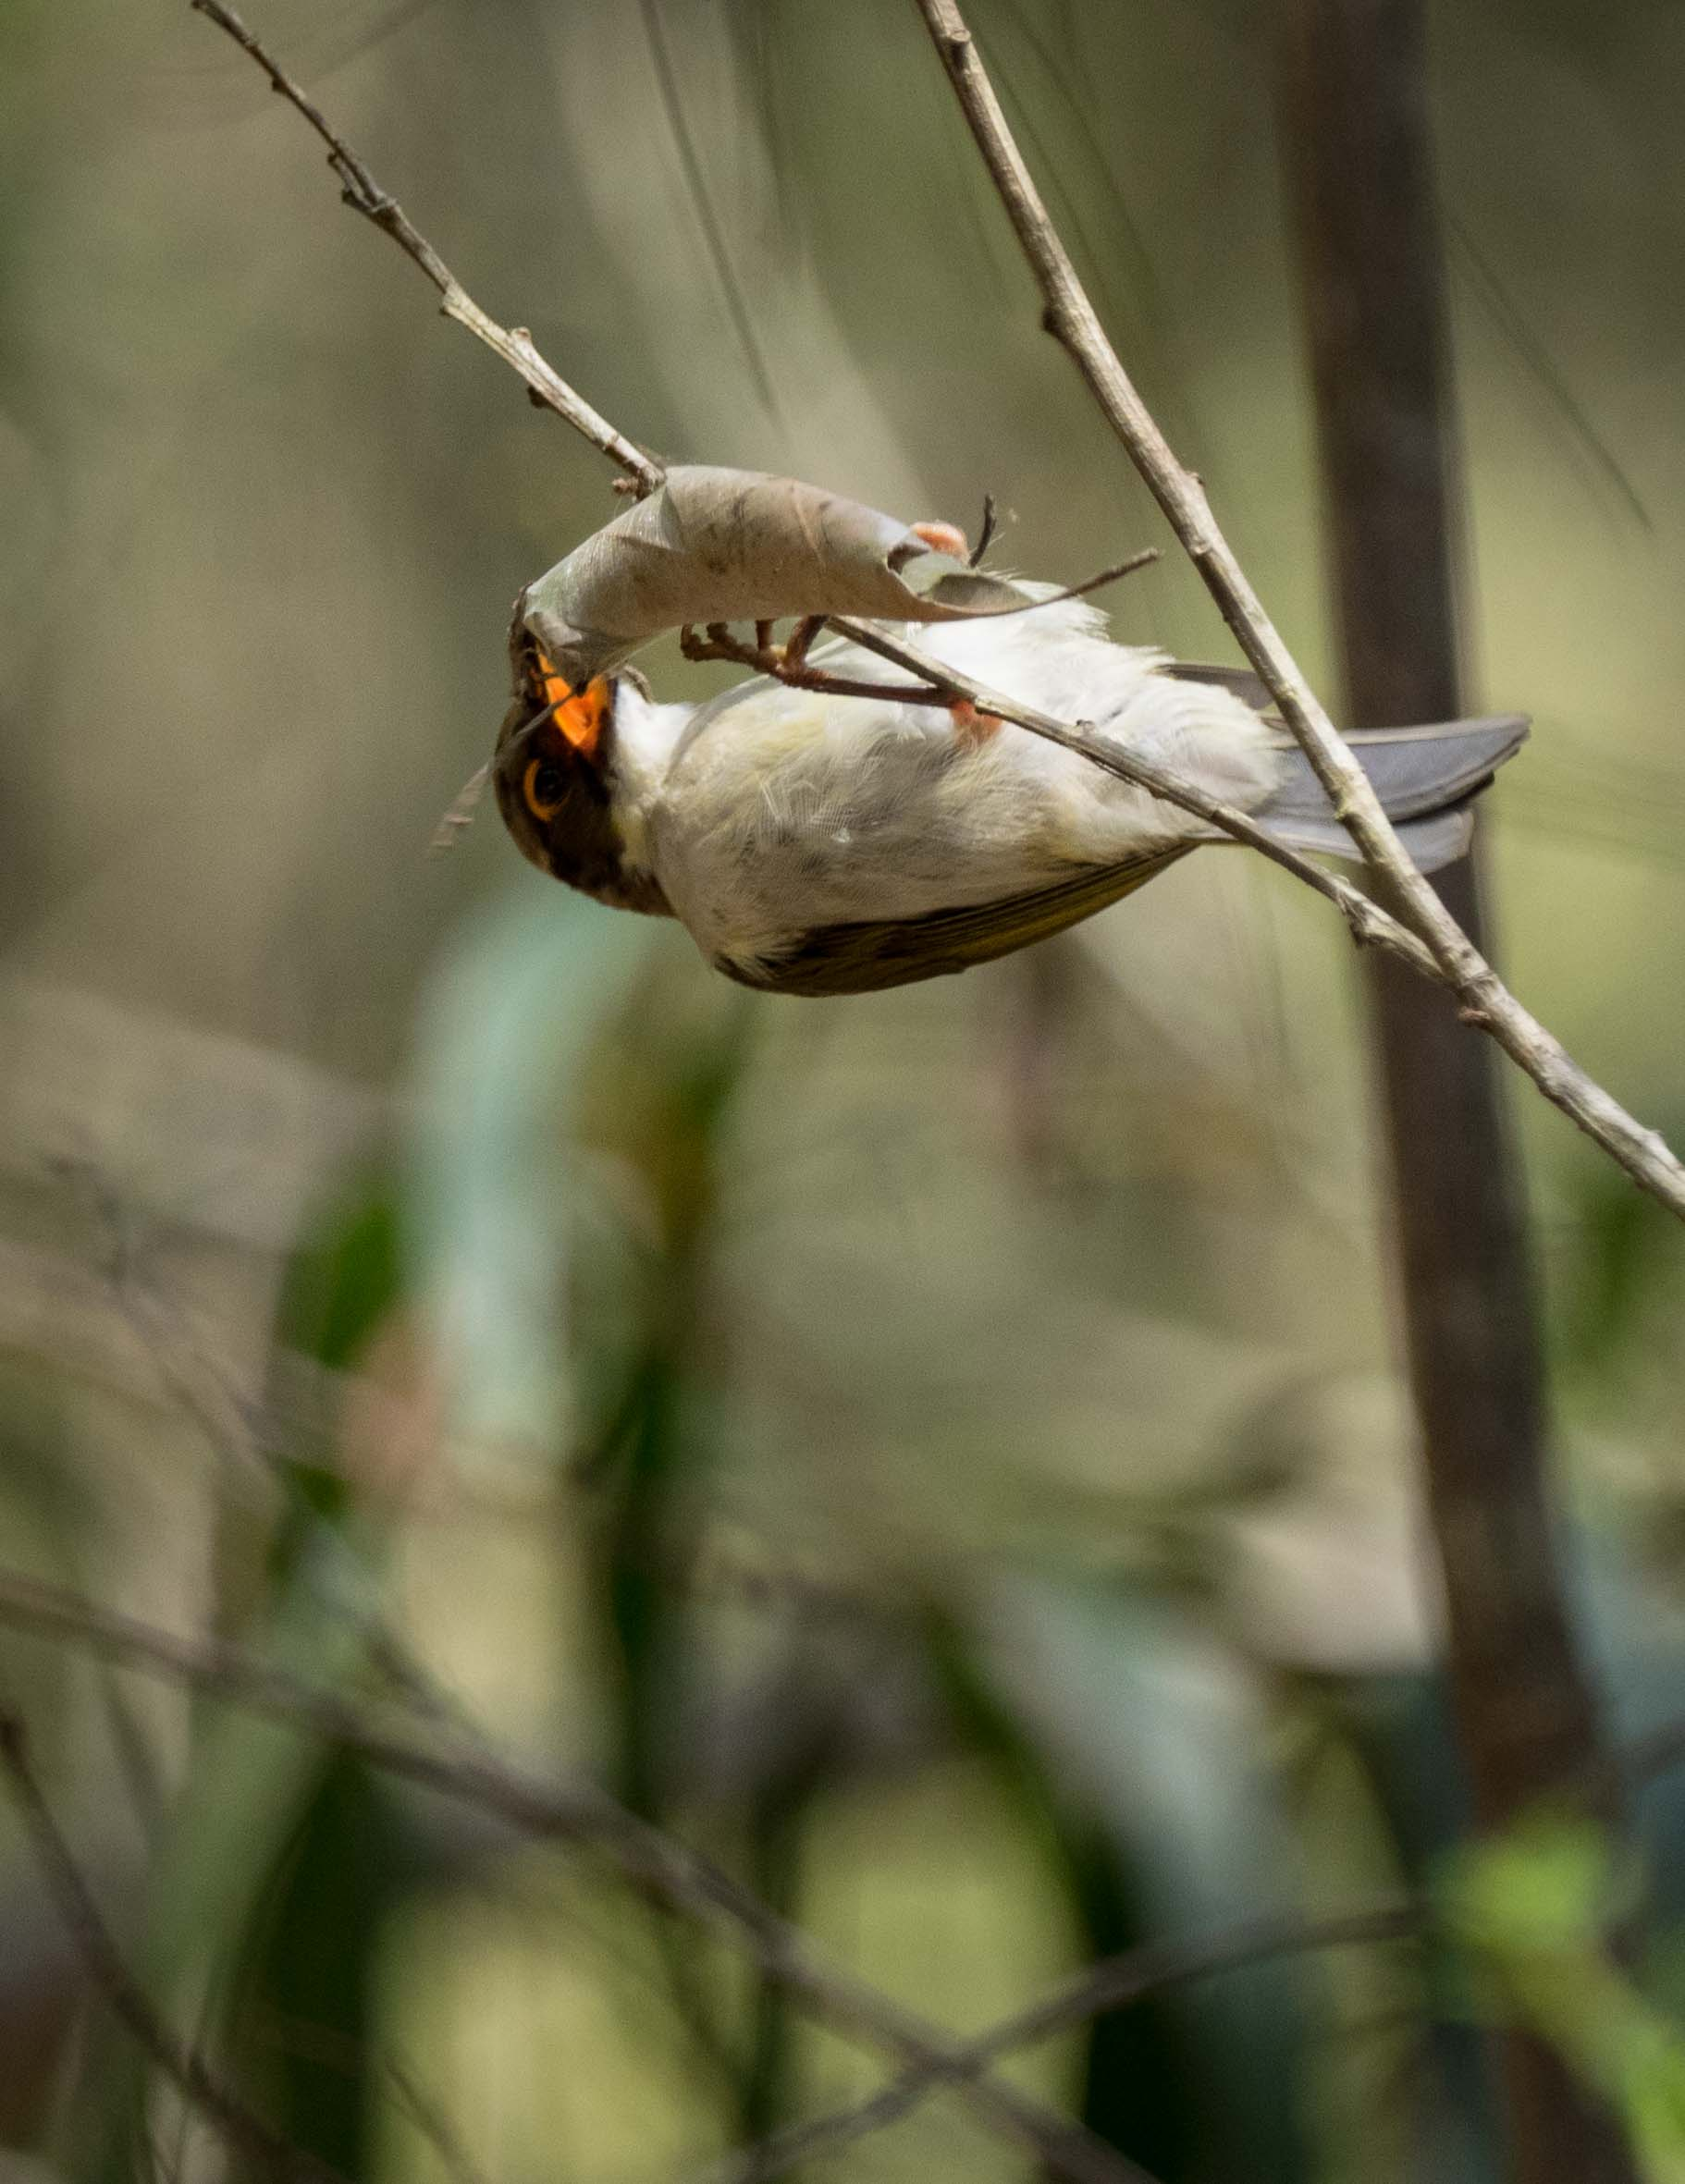 2. The bird hangs onto the leaf as it tries to attack the open end